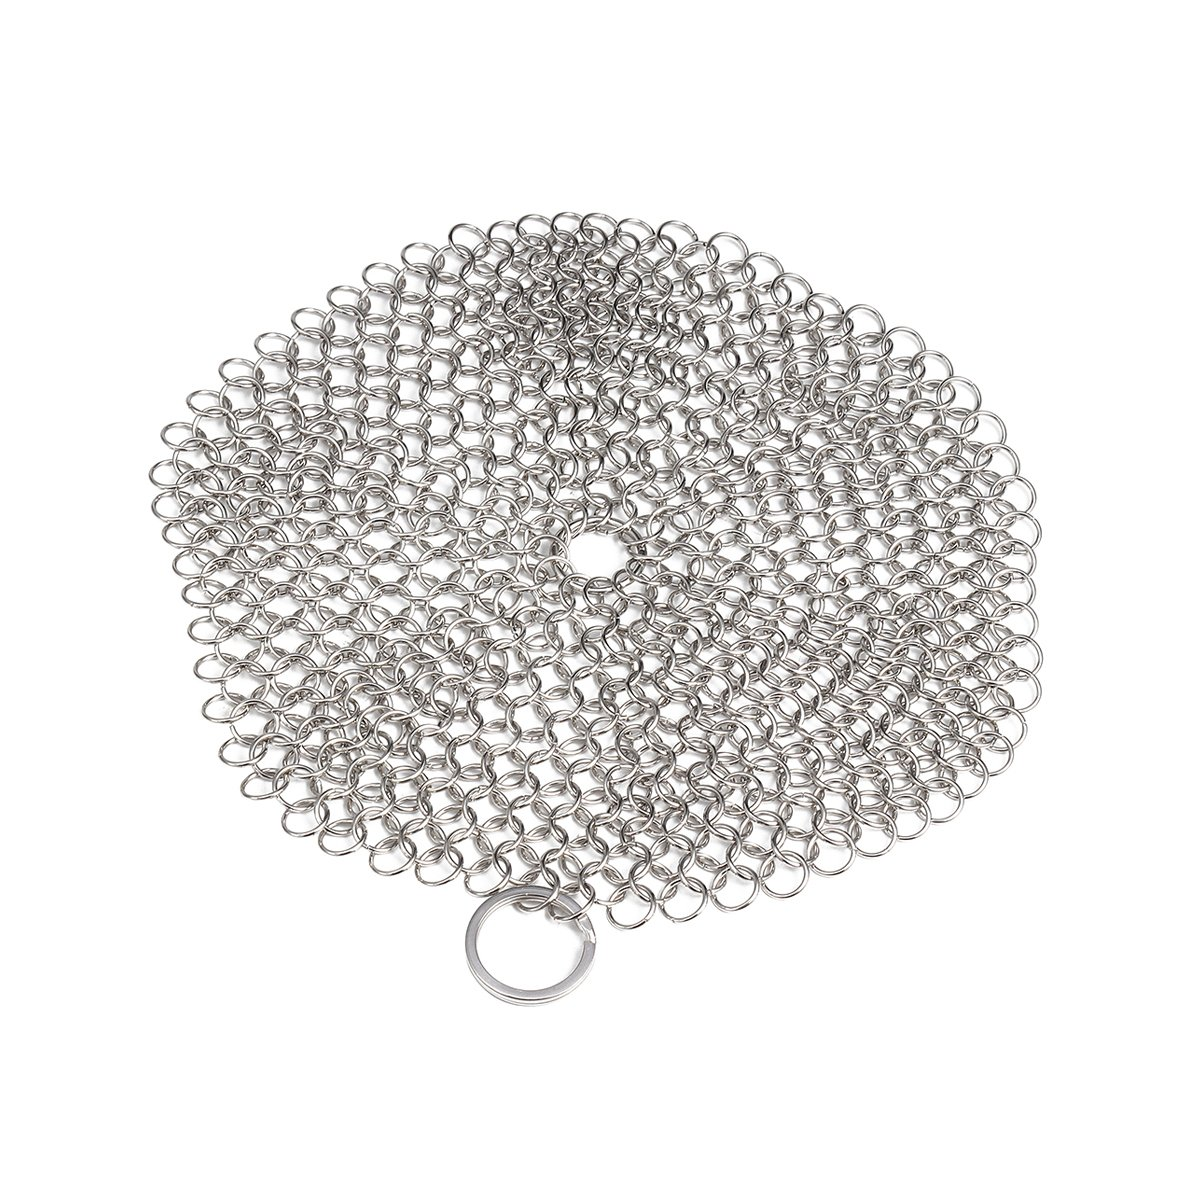 Cast Iron Cleaner,ステンレススチールChainmail Scrubber調理器具Cleaner for Skillet、Wok、ポット、パン はように錆びませんスチールウール ホーム&キャンプ 調理器具、Seasoning A0W0E0D0IQWX B07C89TCLH Round: 8 Cm